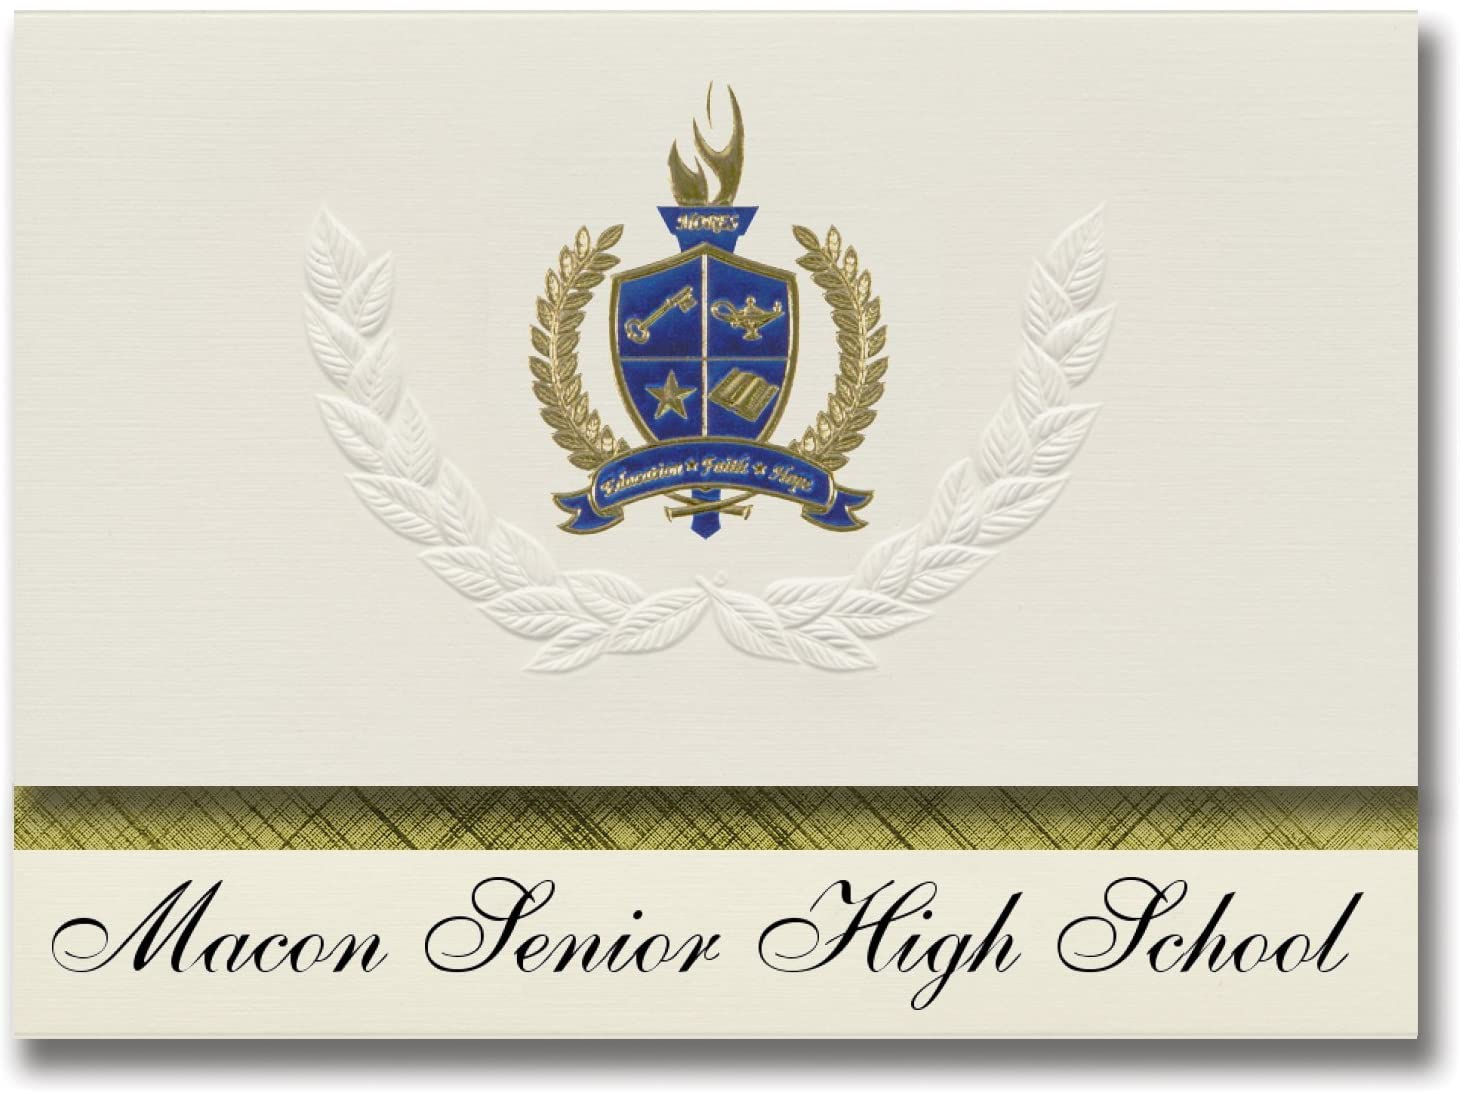 Signature Announcements Macon Senior High School (Macon, MO) Graduation Announcements, Presidential style, Basic package of 25 with Gold & Blue Metallic Foil seal